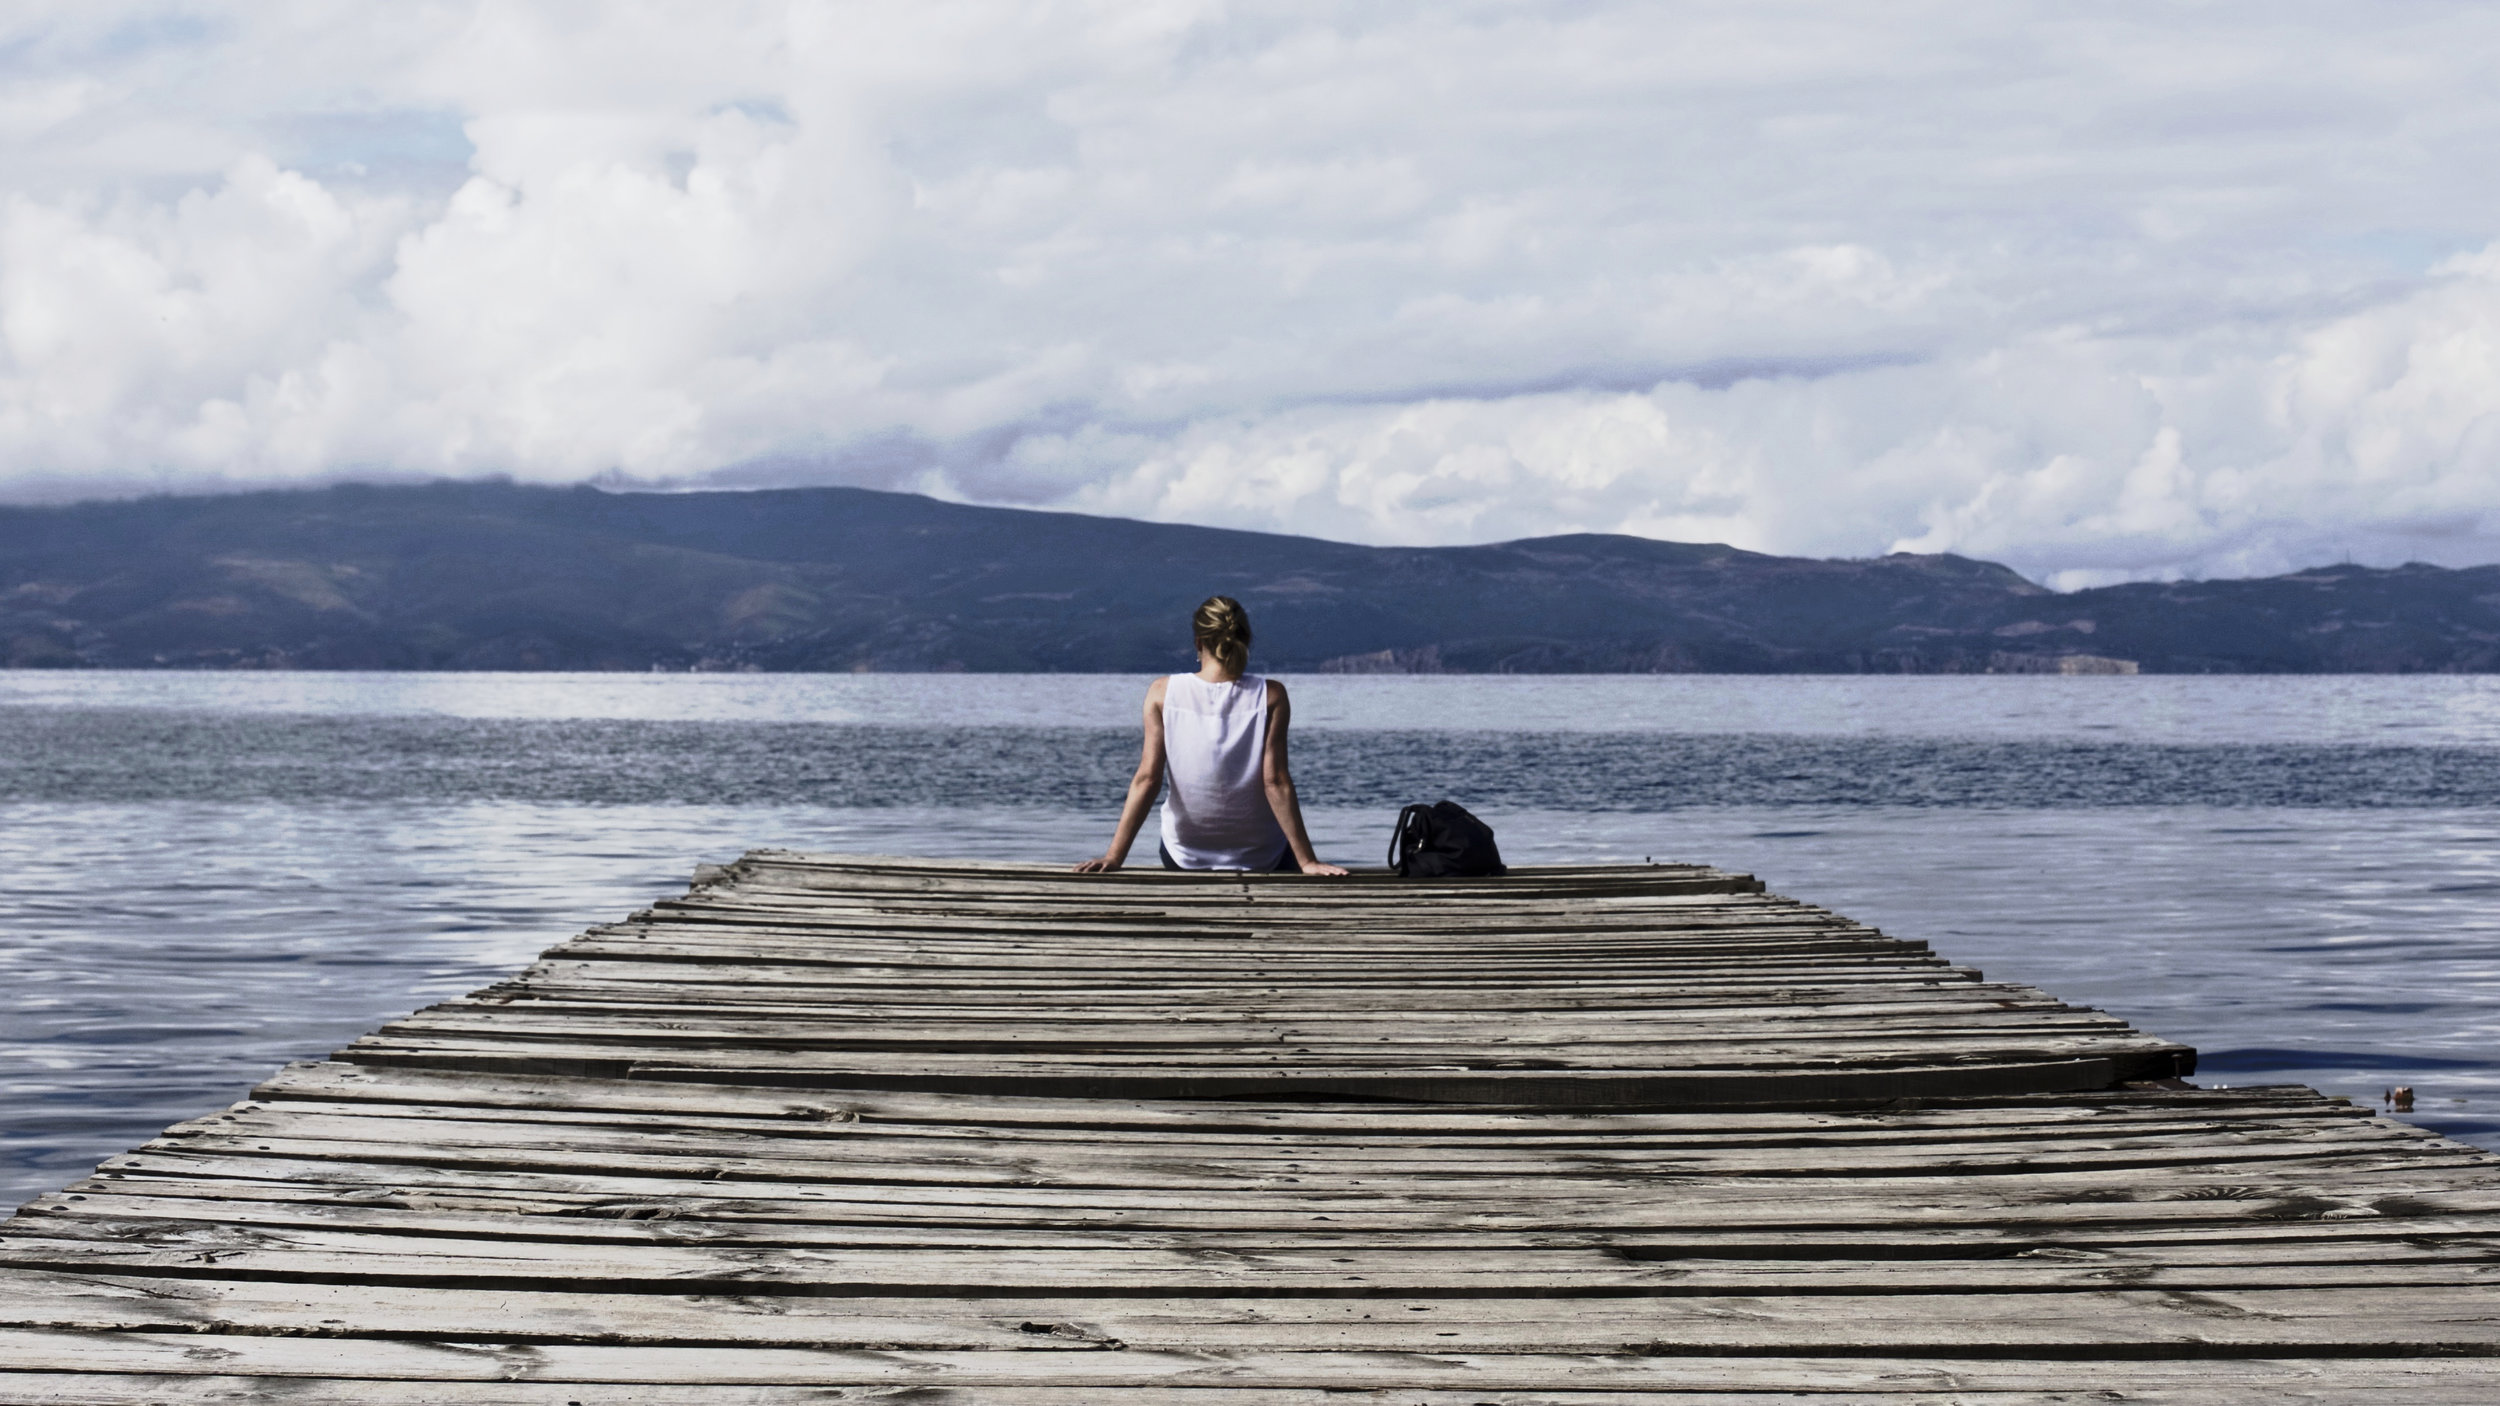 Woman sitting on dock looking out at mountains and lake.